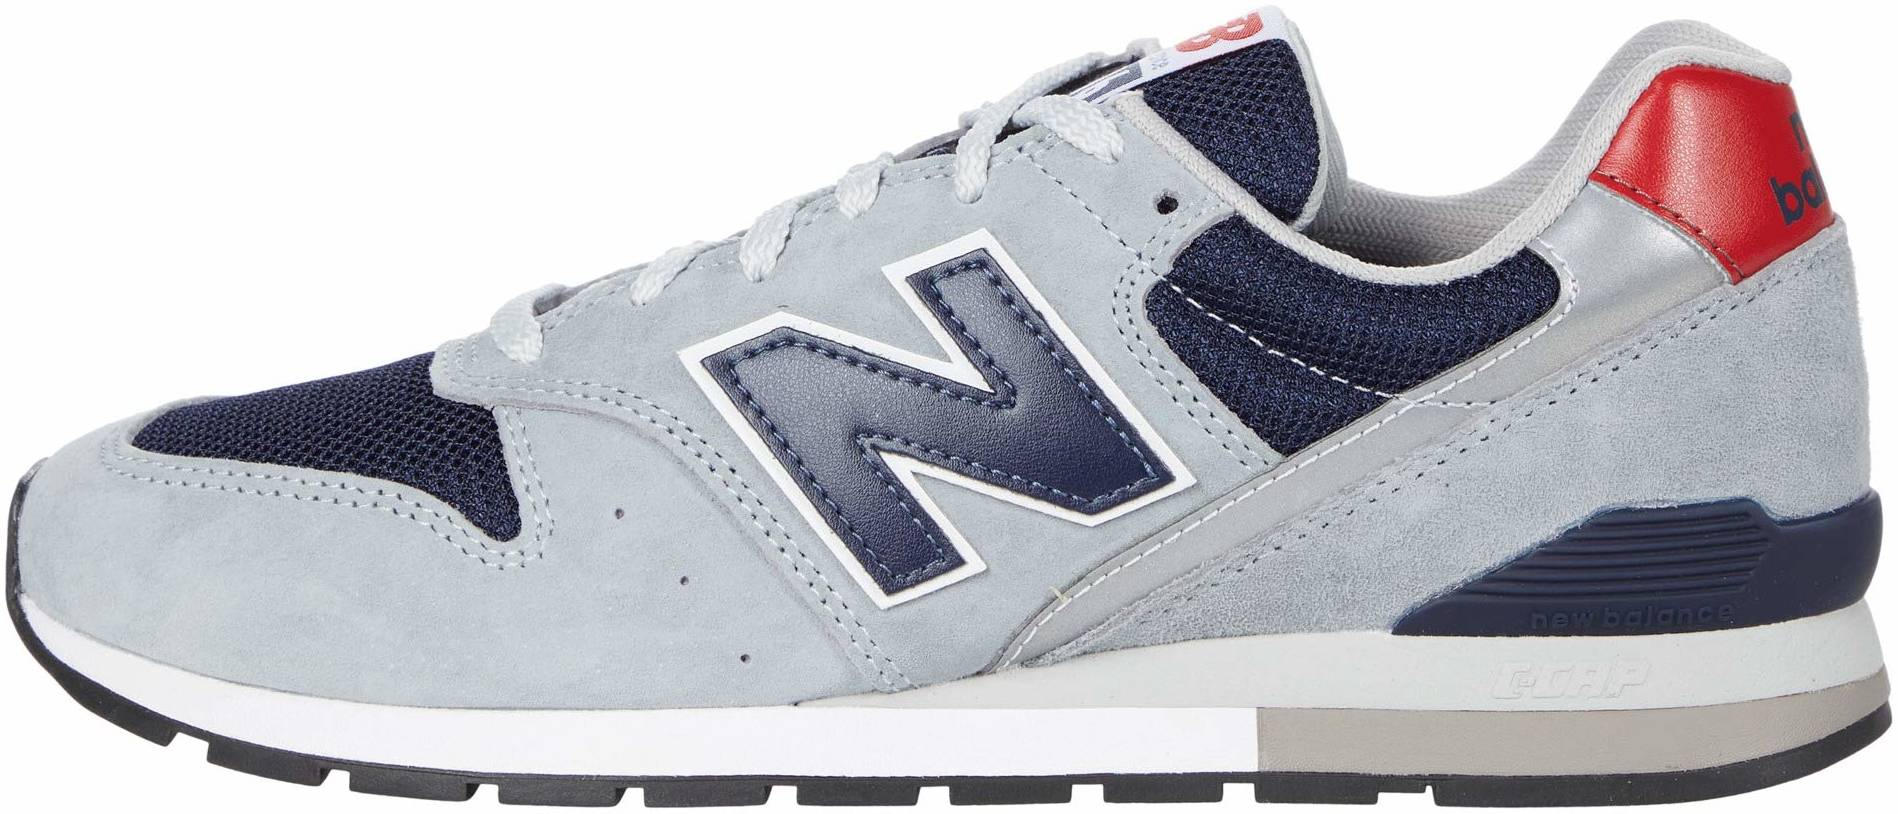 New Balance 996 sneakers in 3 colors (only $62) | RunRepeat